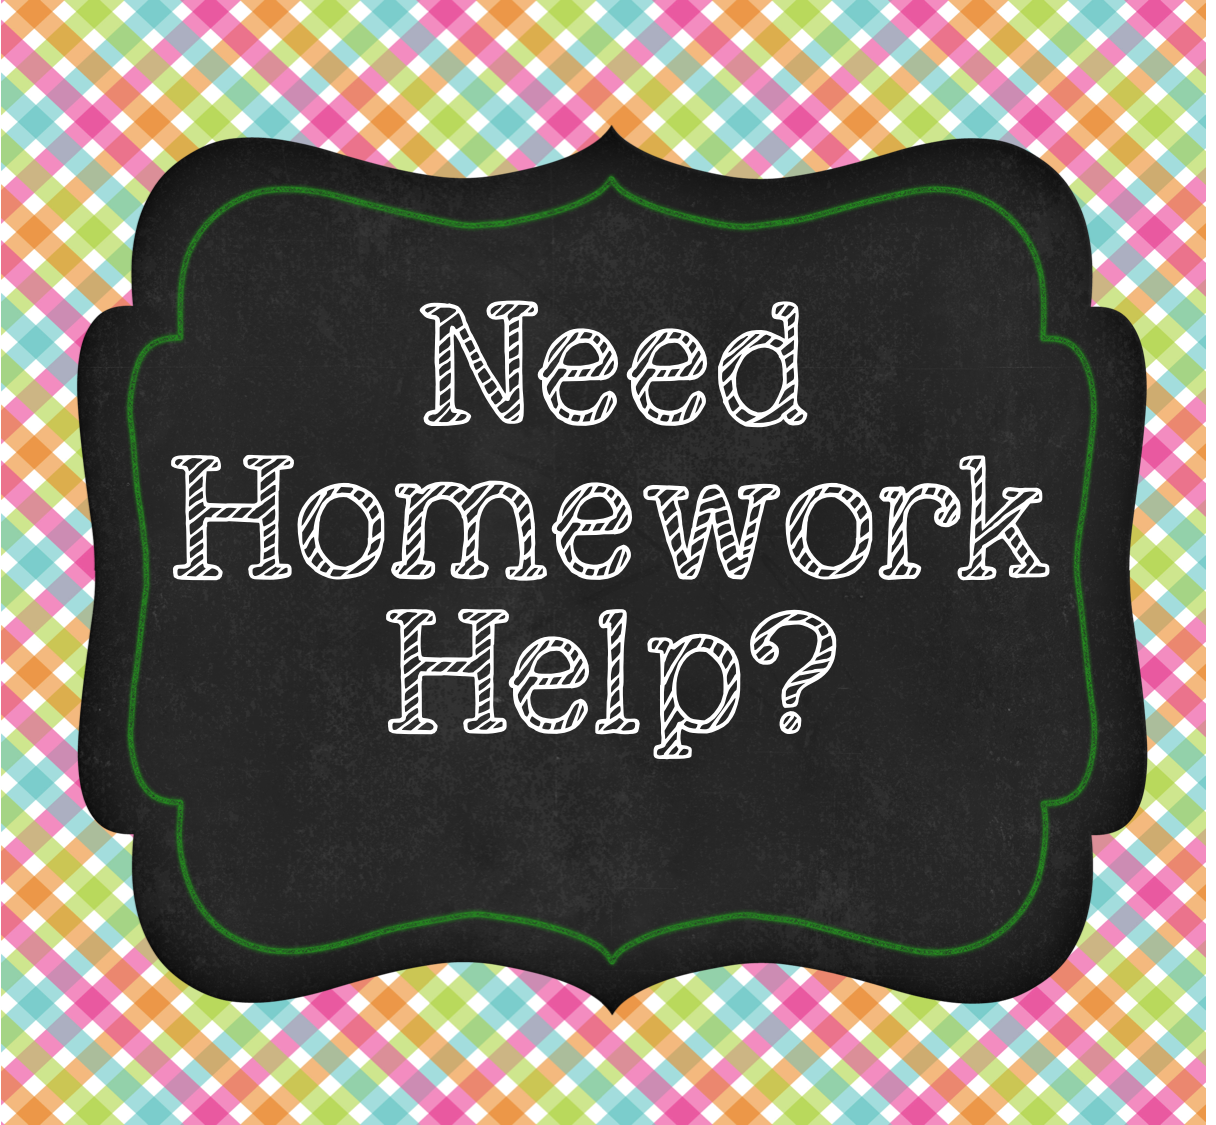 The best website for homework help